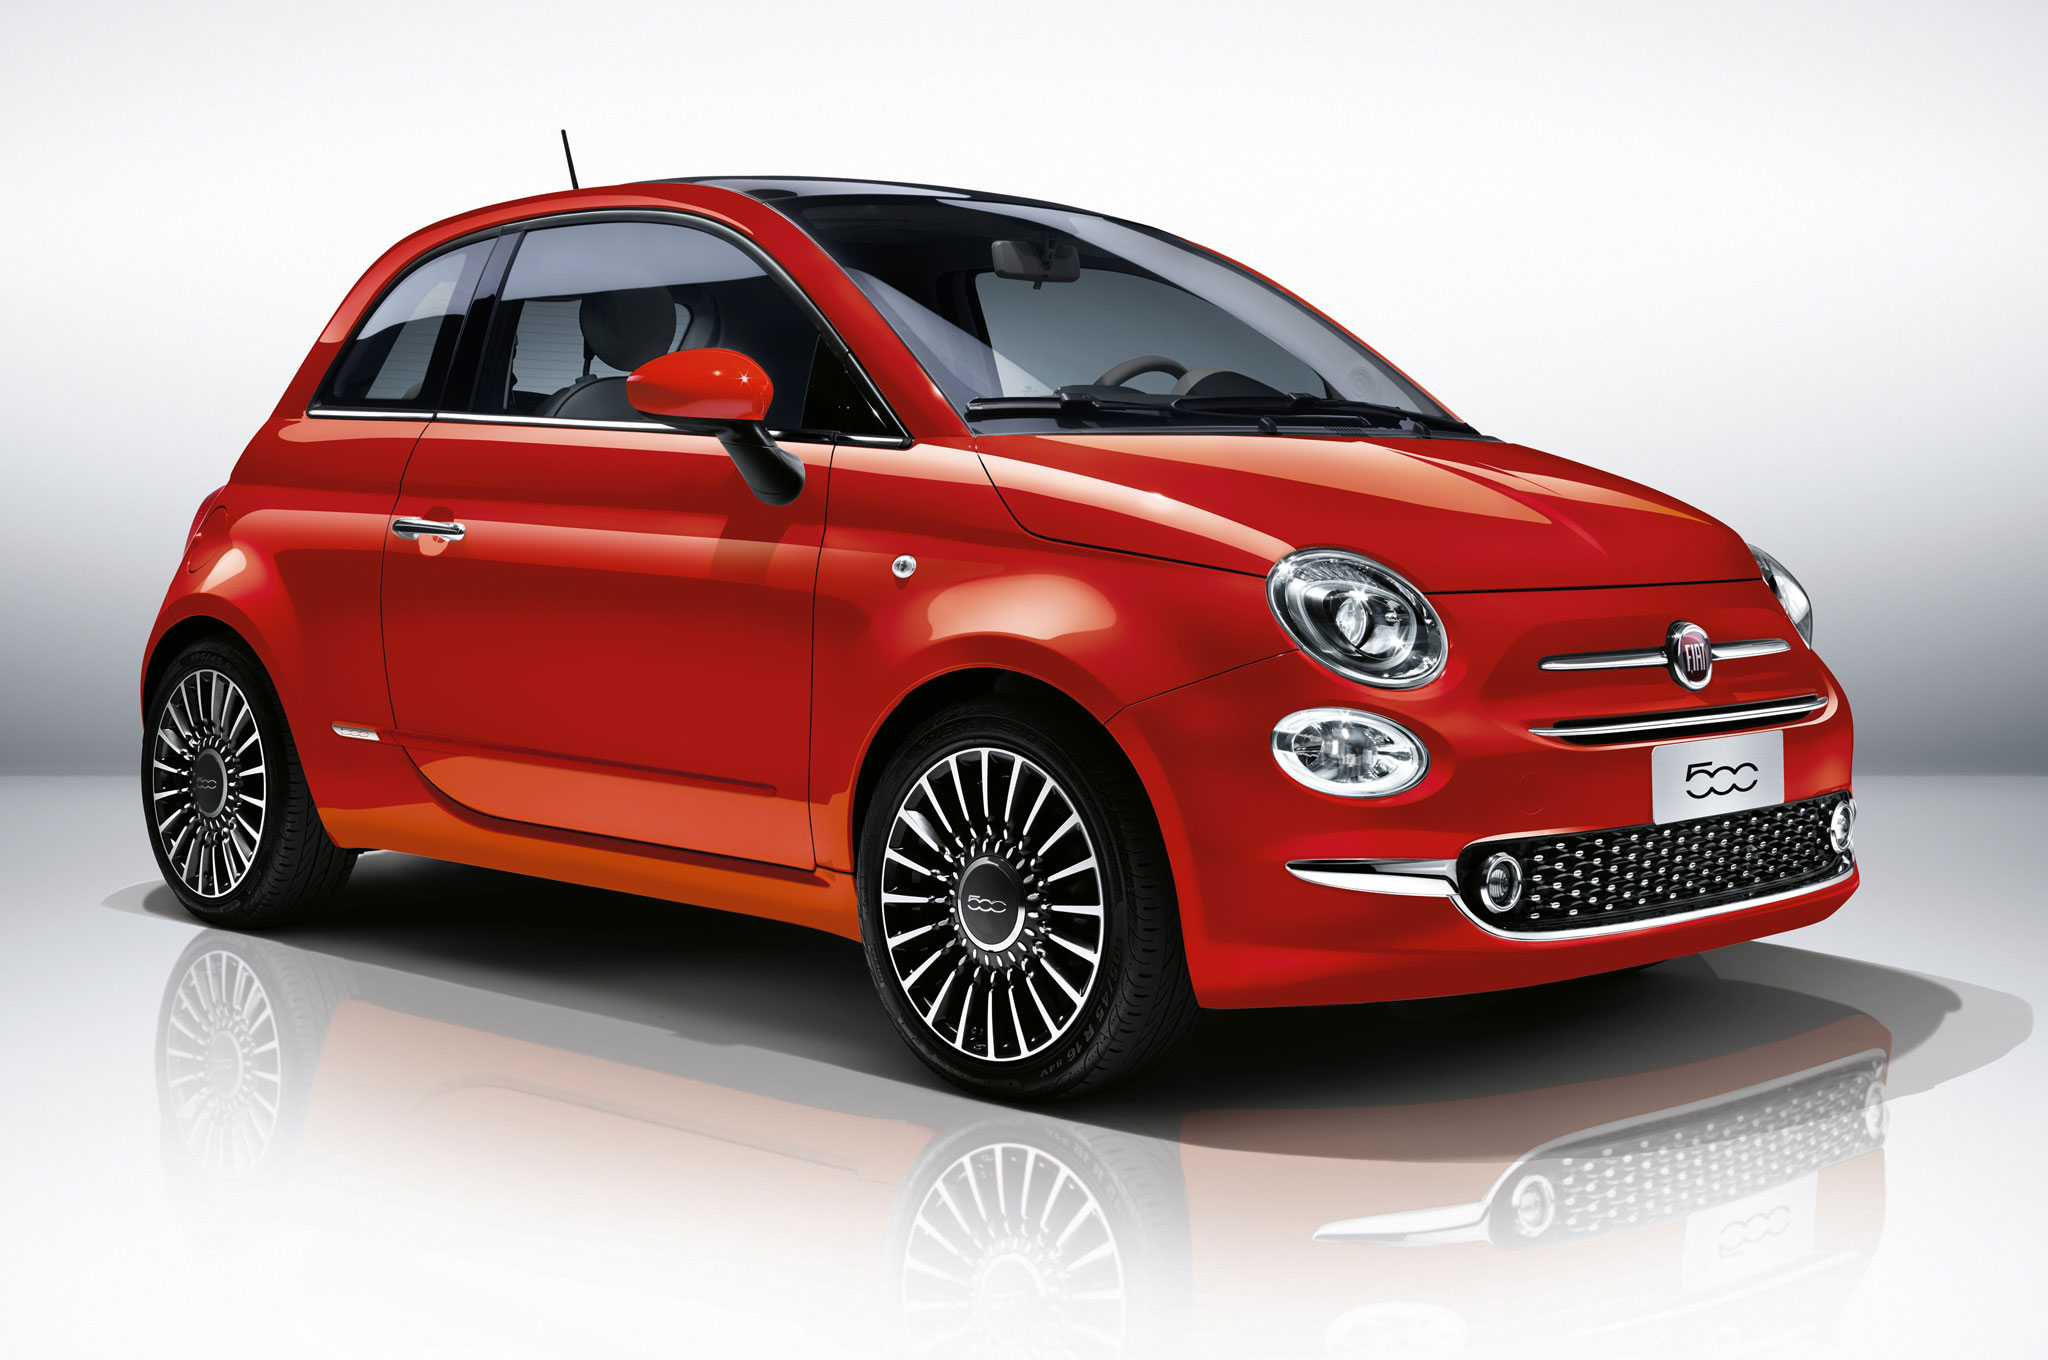 2016 Fiat 500 Front Three Quarter 08